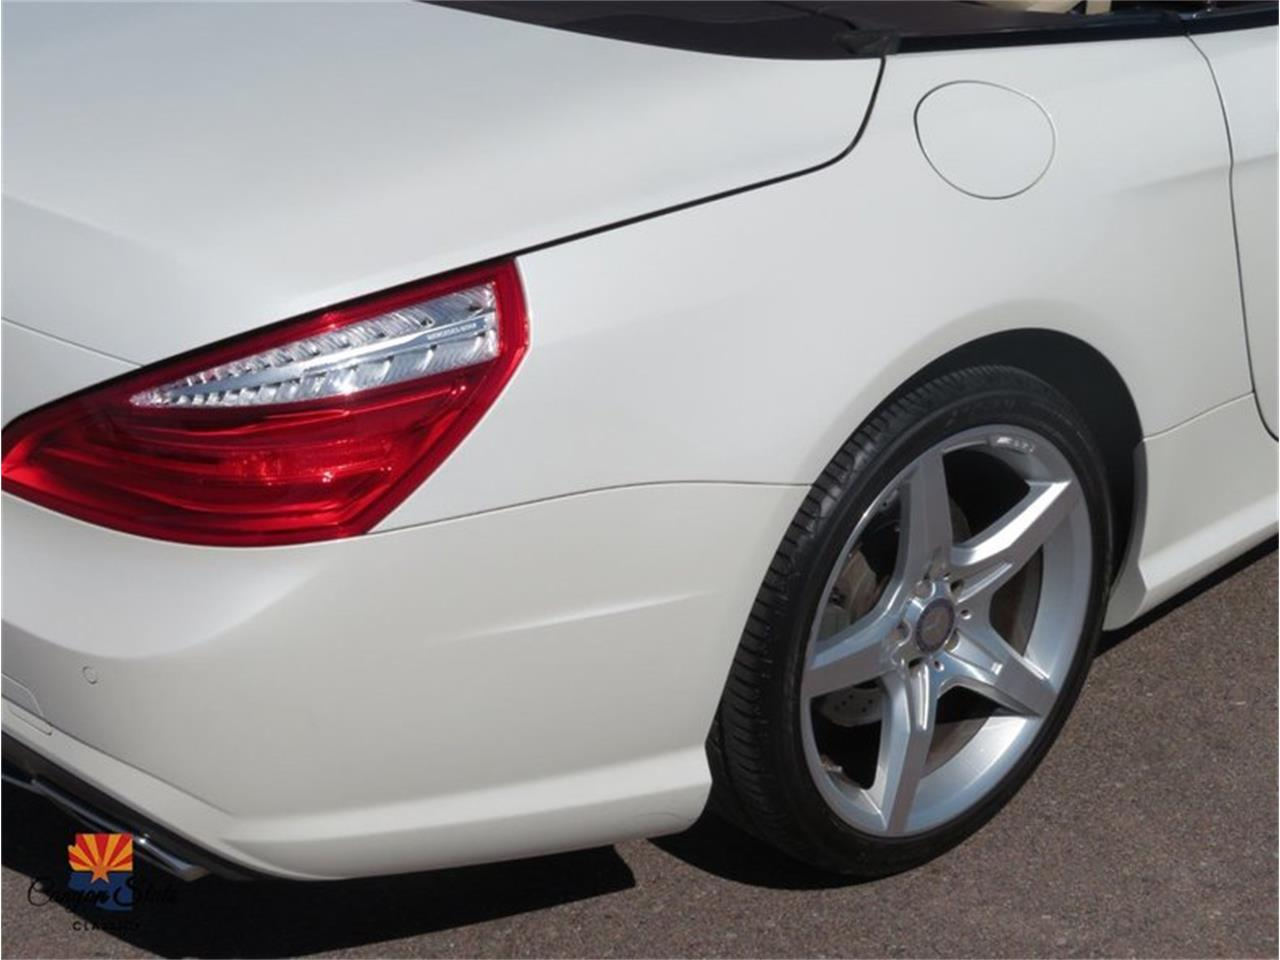 2013 Mercedes-Benz SL-Class for sale in Tempe, AZ – photo 48